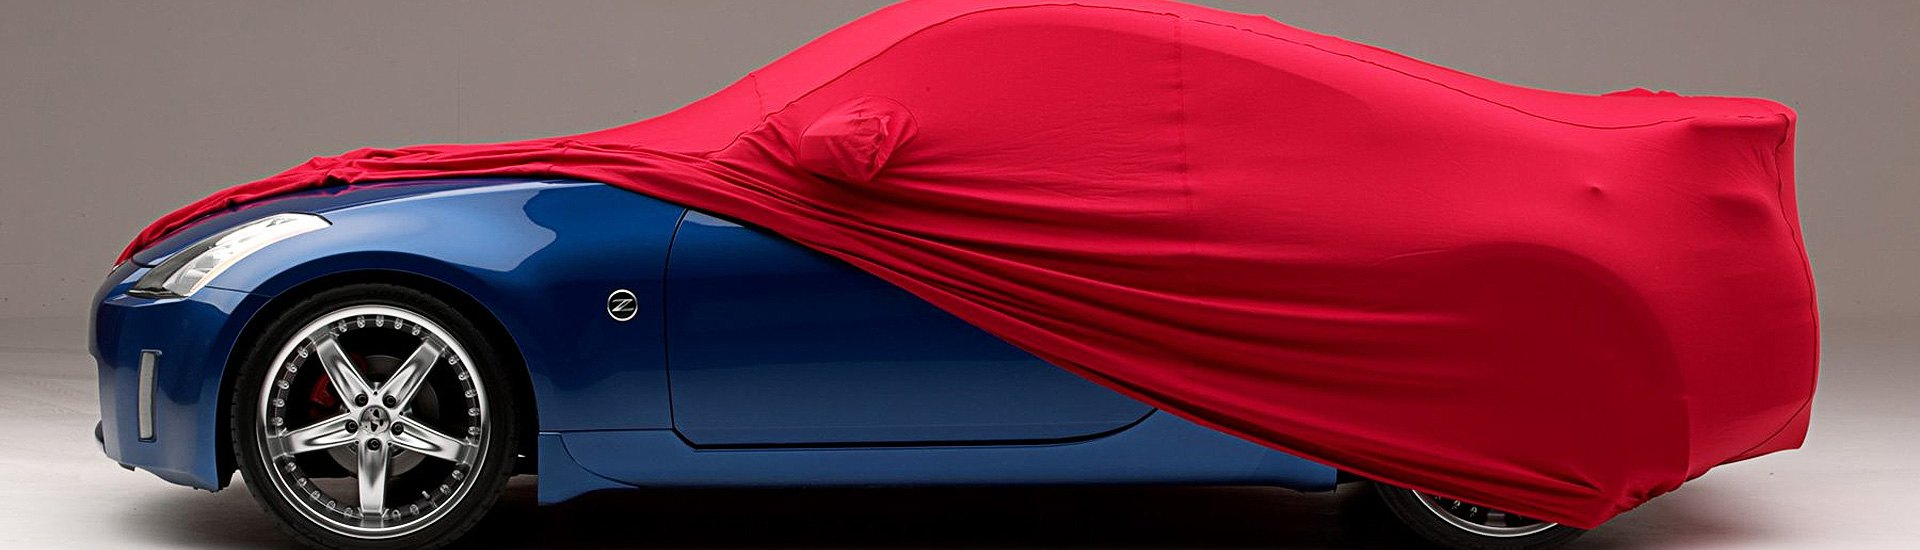 Should I Get a Custom-Fit or a Universal Car Cover?